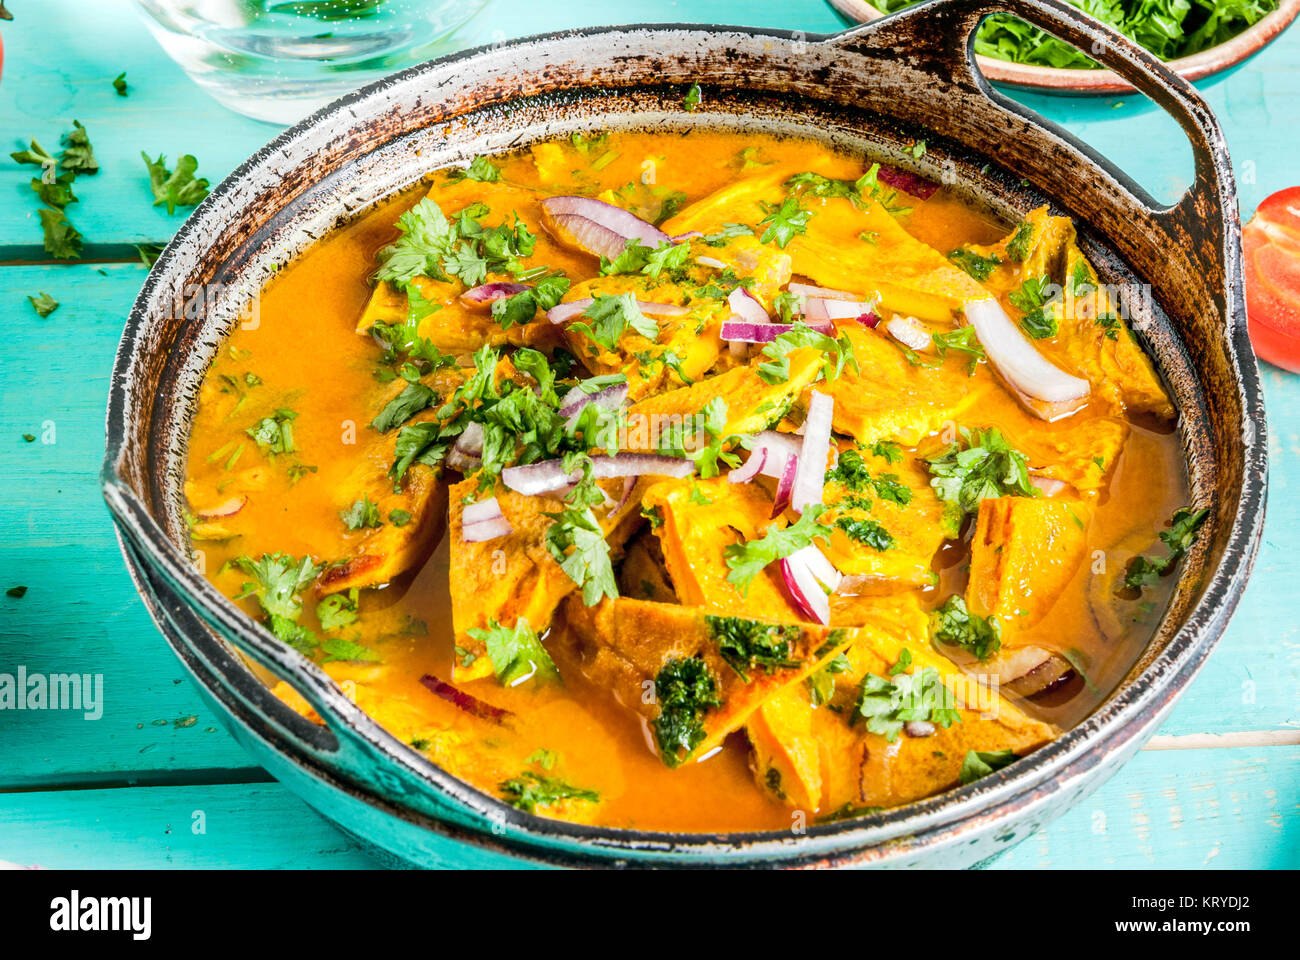 Indian food recipes indian omelet masala egg curry with fresh indian food recipes indian omelet masala egg curry with fresh vegetables tomato hot chili pepper parsley light blue wooden background copy spa forumfinder Images